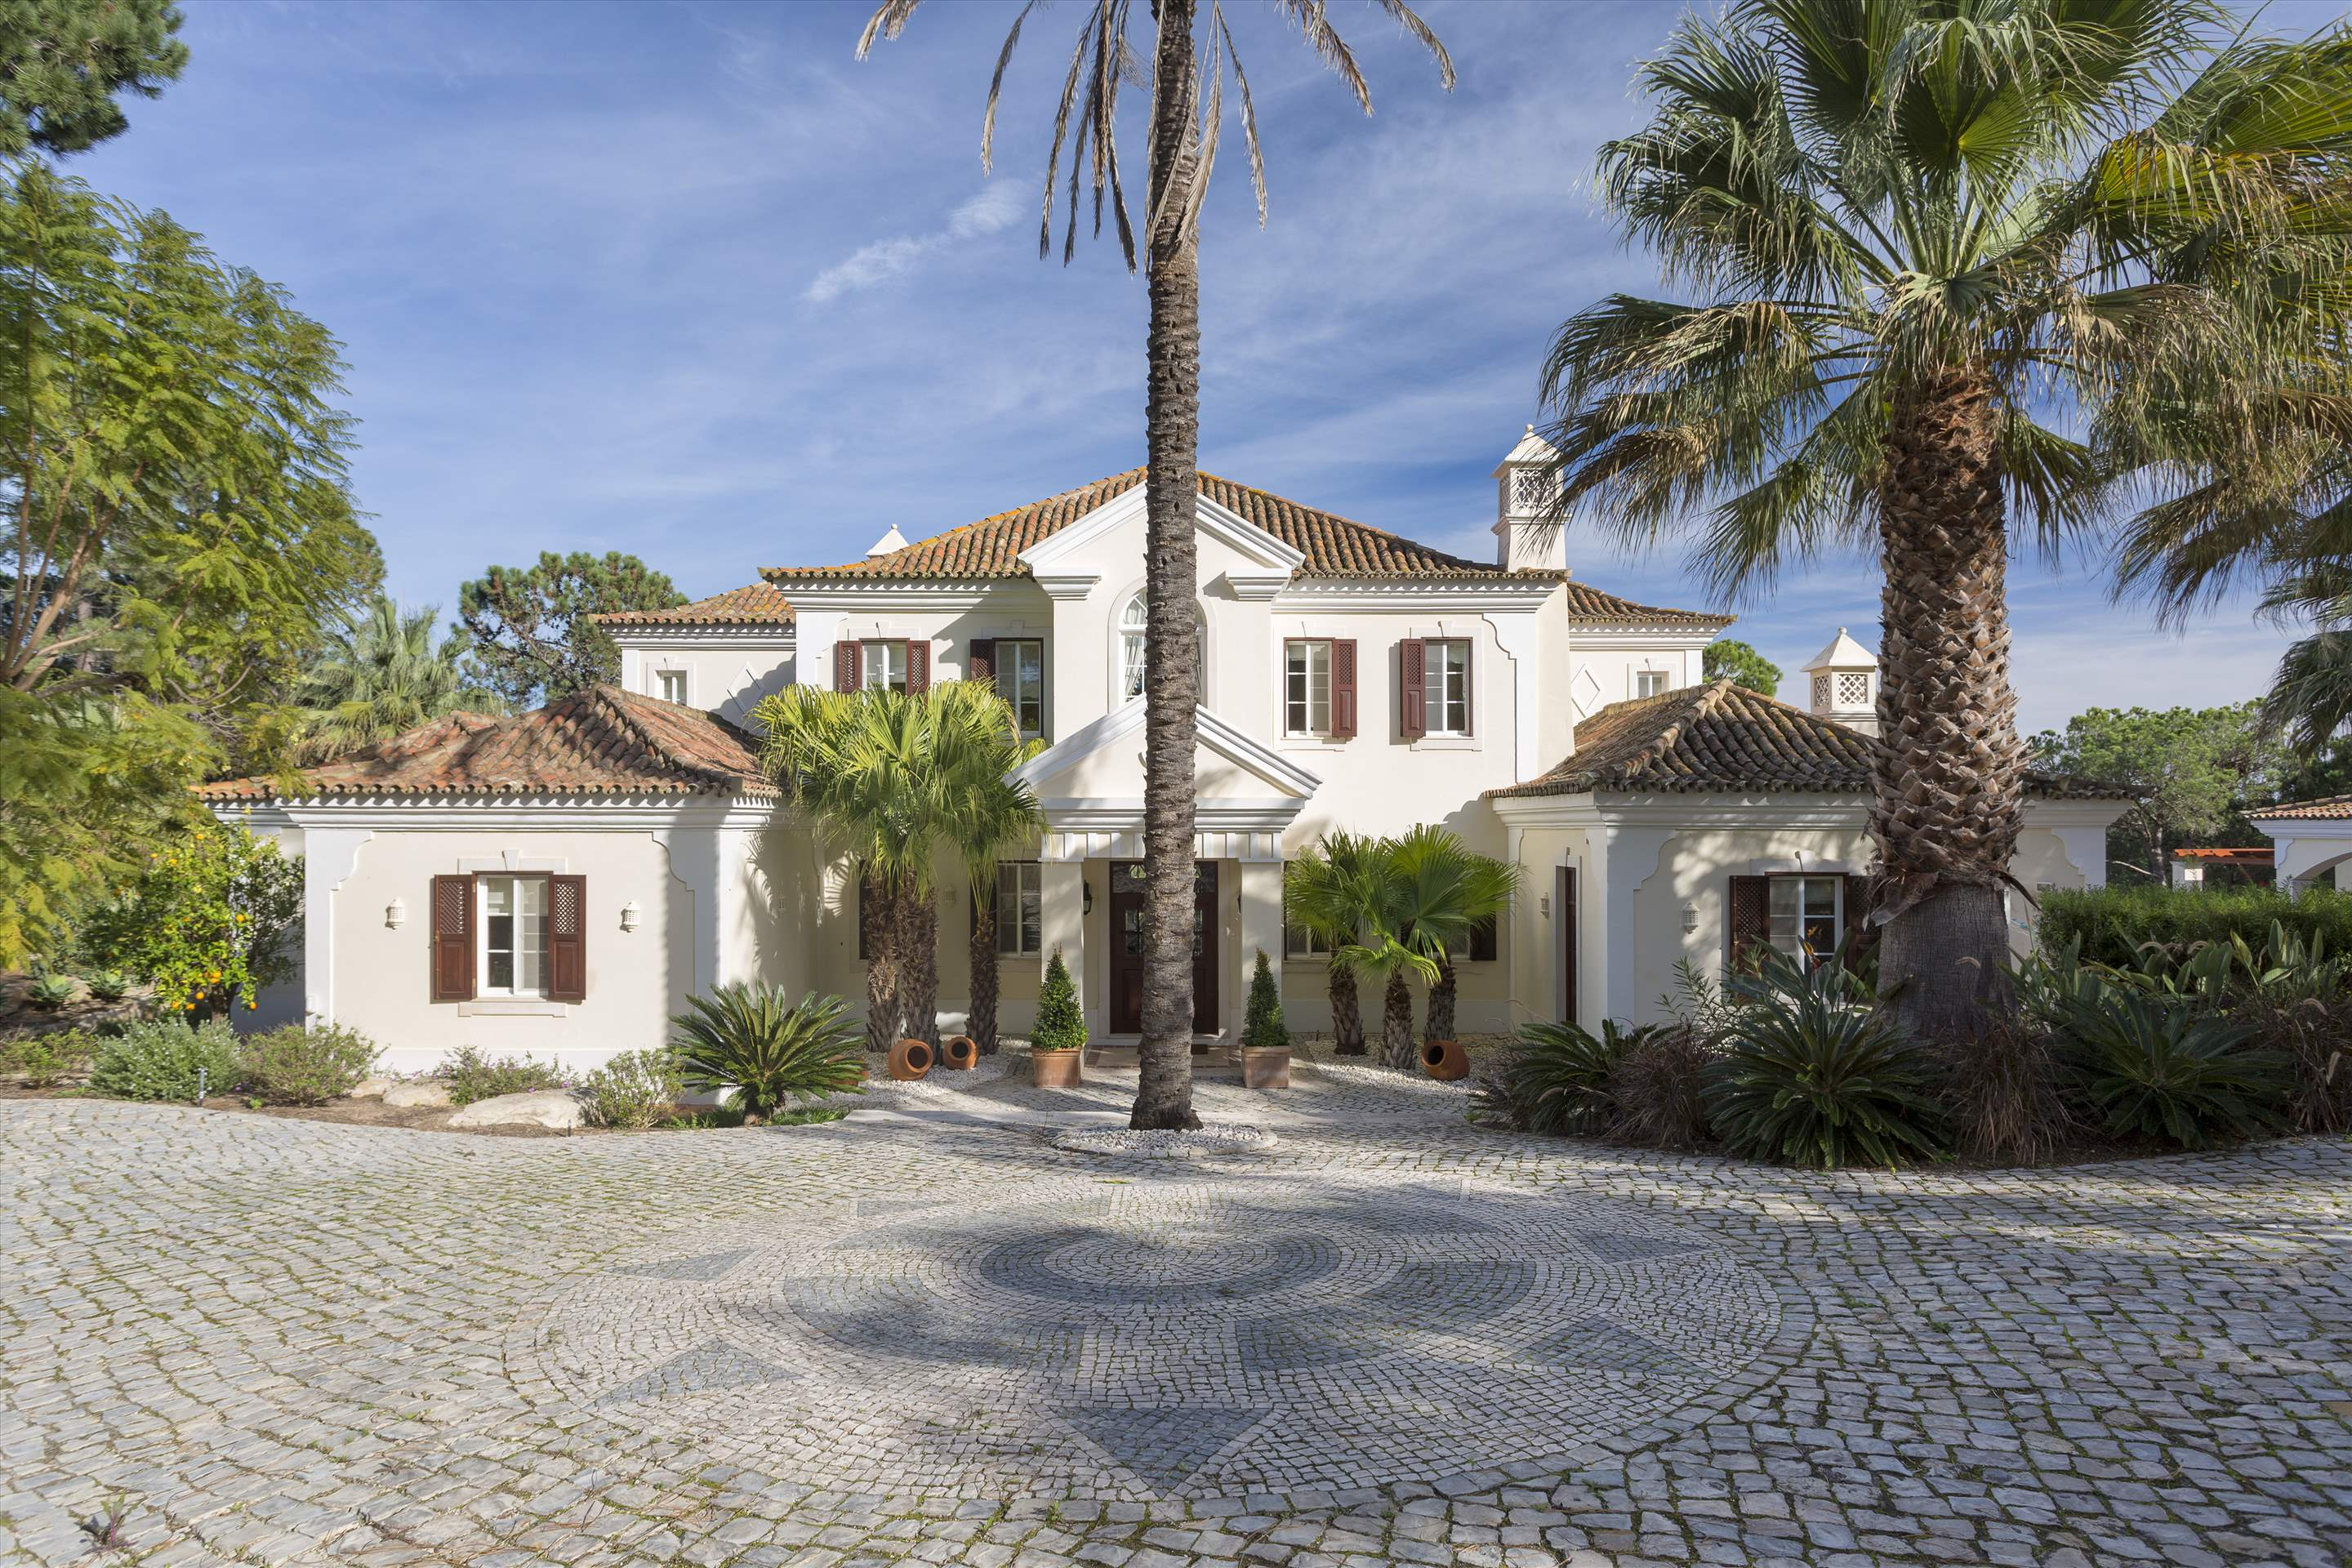 Villa Palmeiras Altas, 5 bedroom villa in Quinta do Lago, Algarve Photo #1